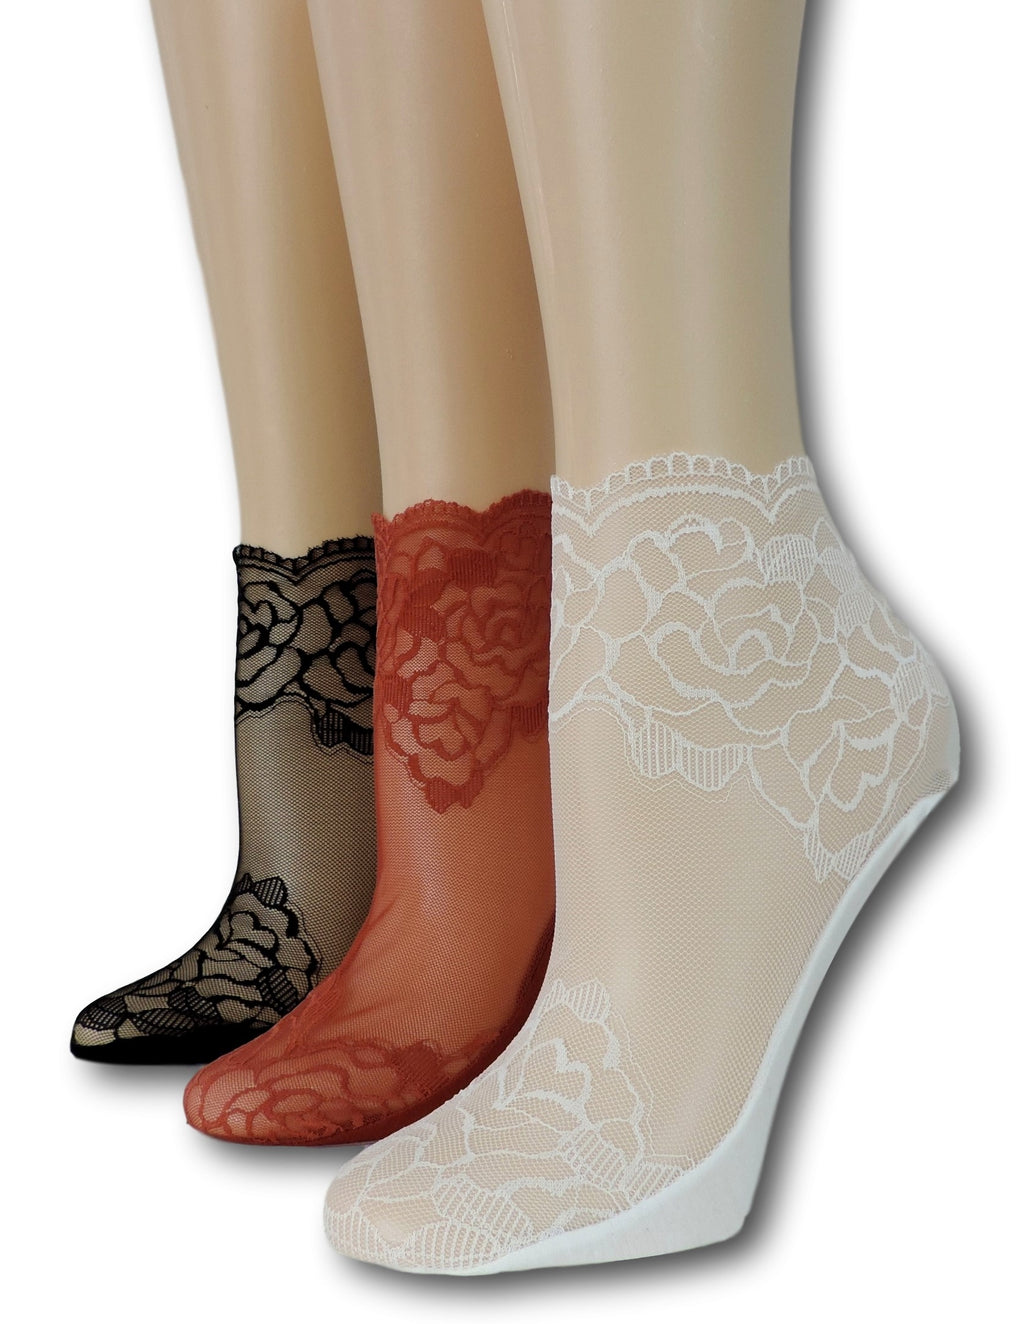 Rose Sheer Socks (Pack of 3 Pairs)